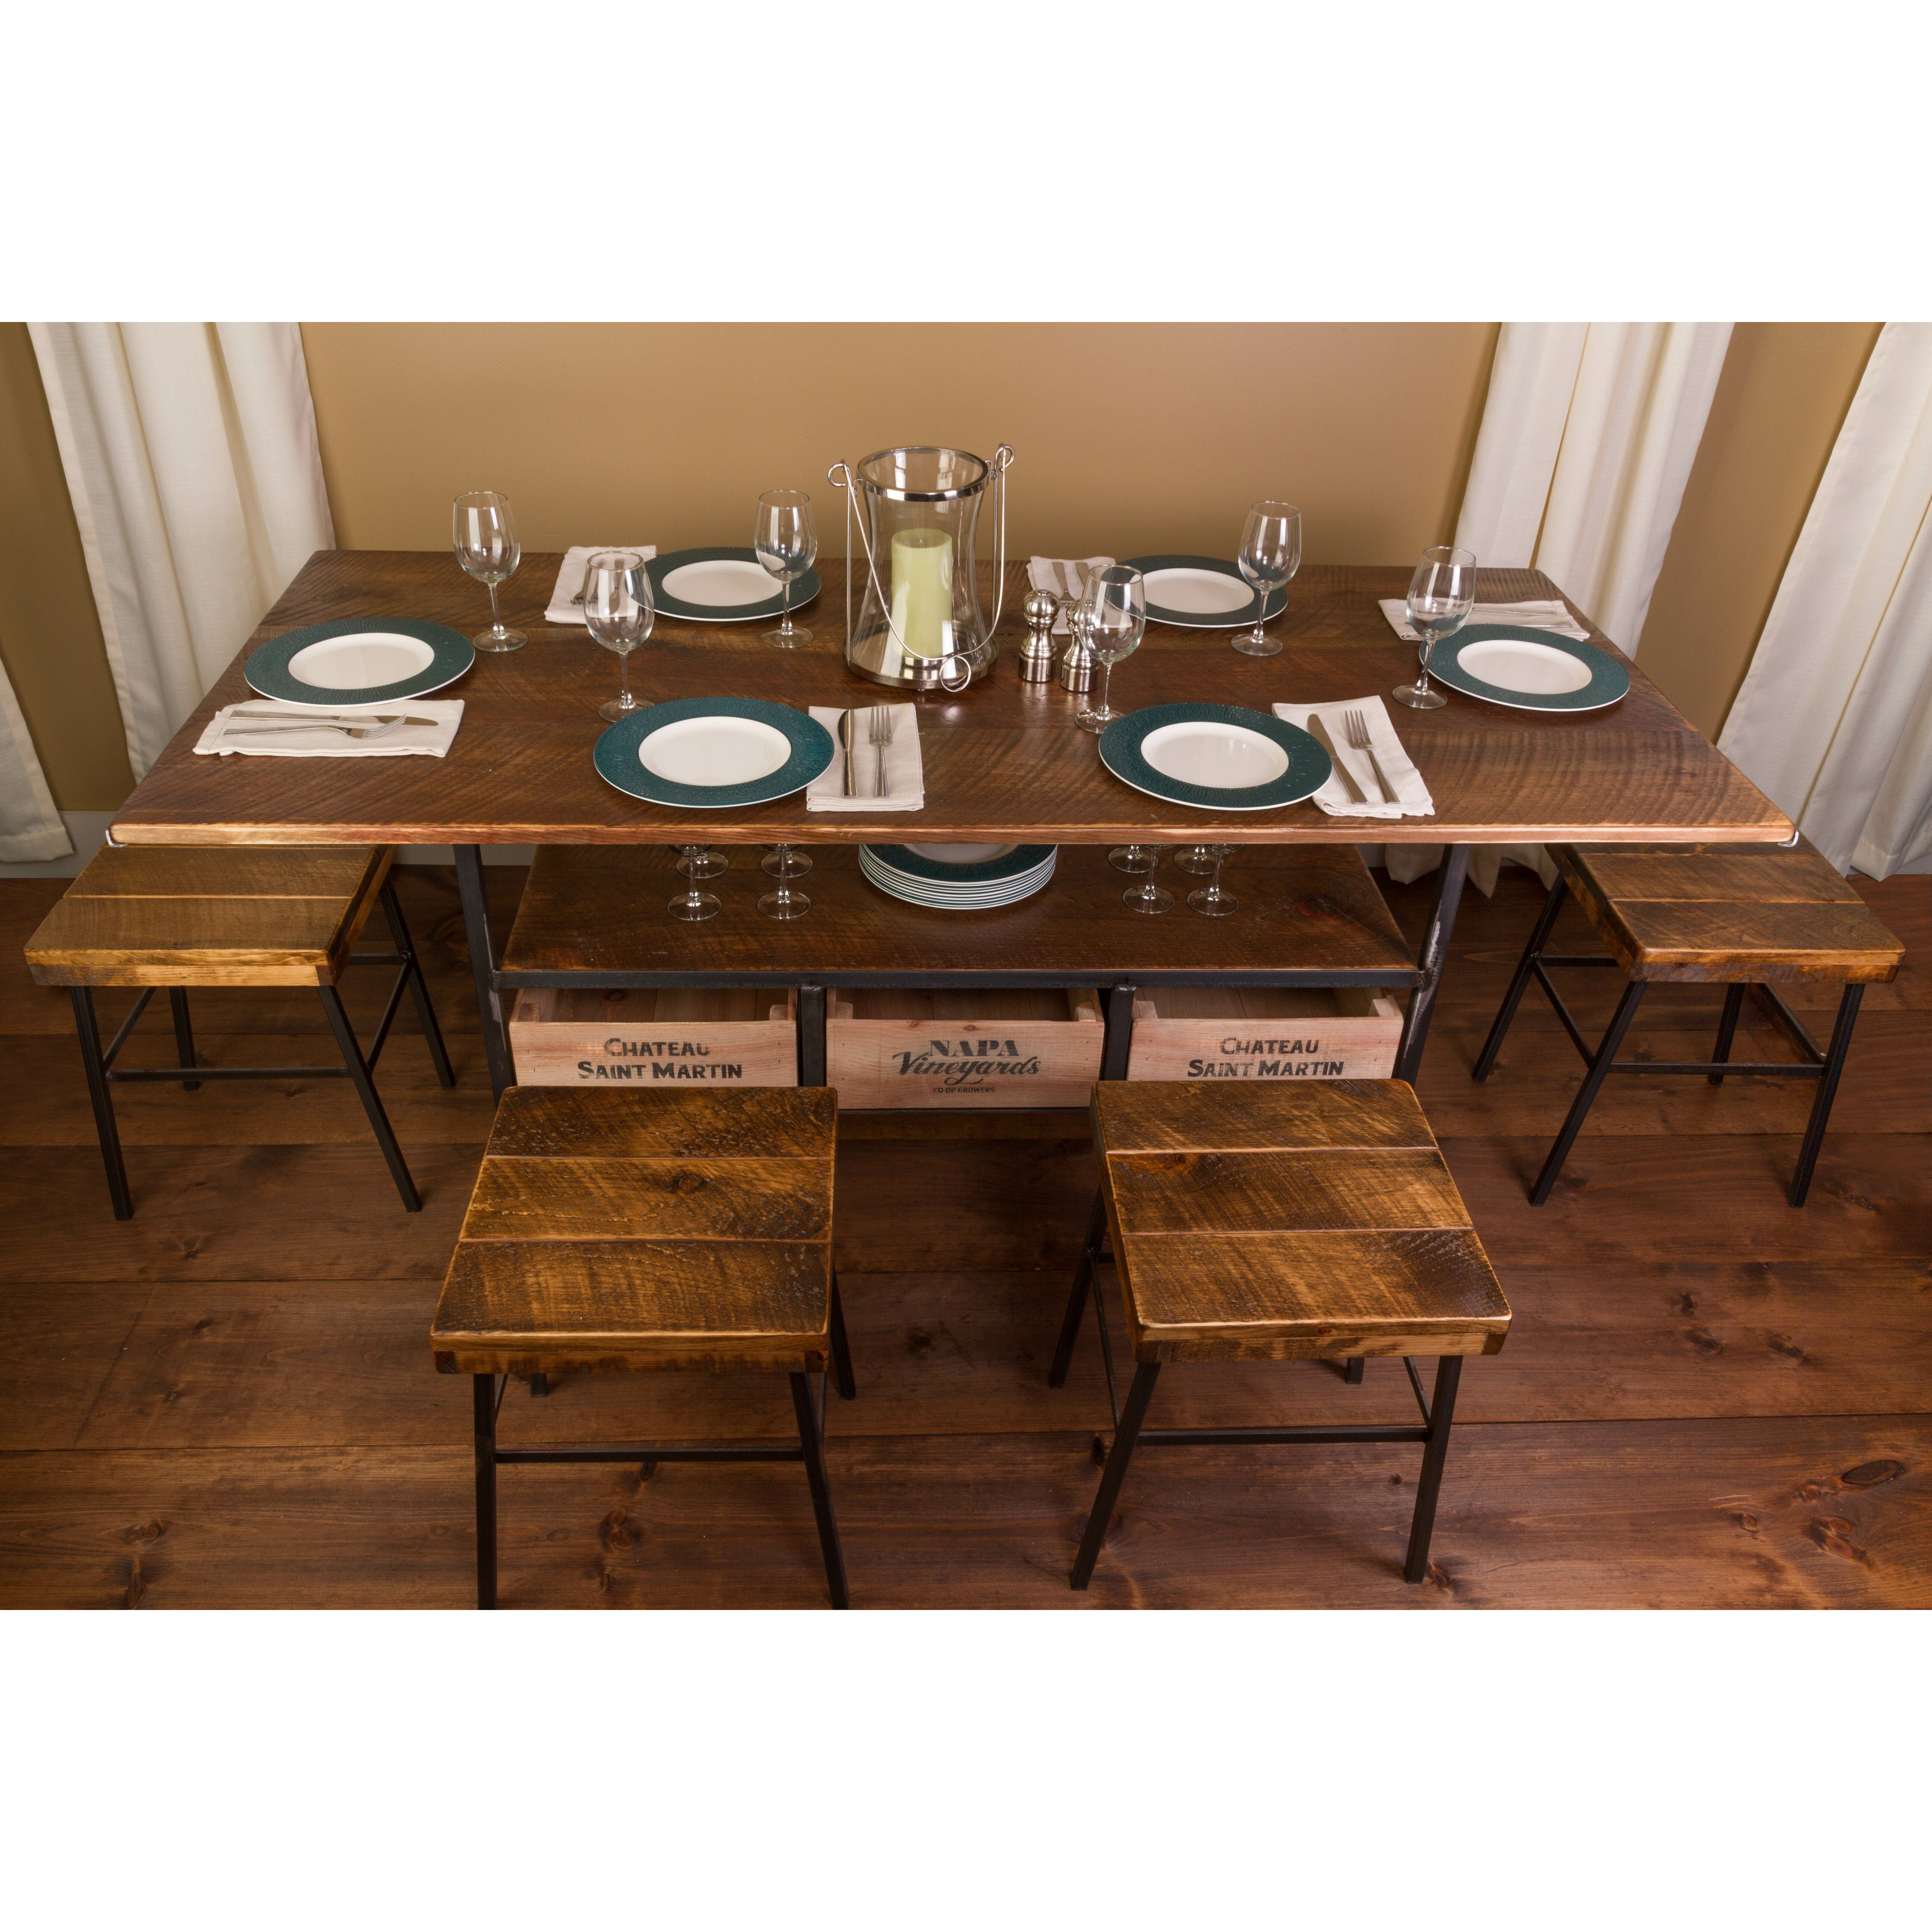 Farm Dining Tables: Vino Vintage Farm 7 Piece Dining Table